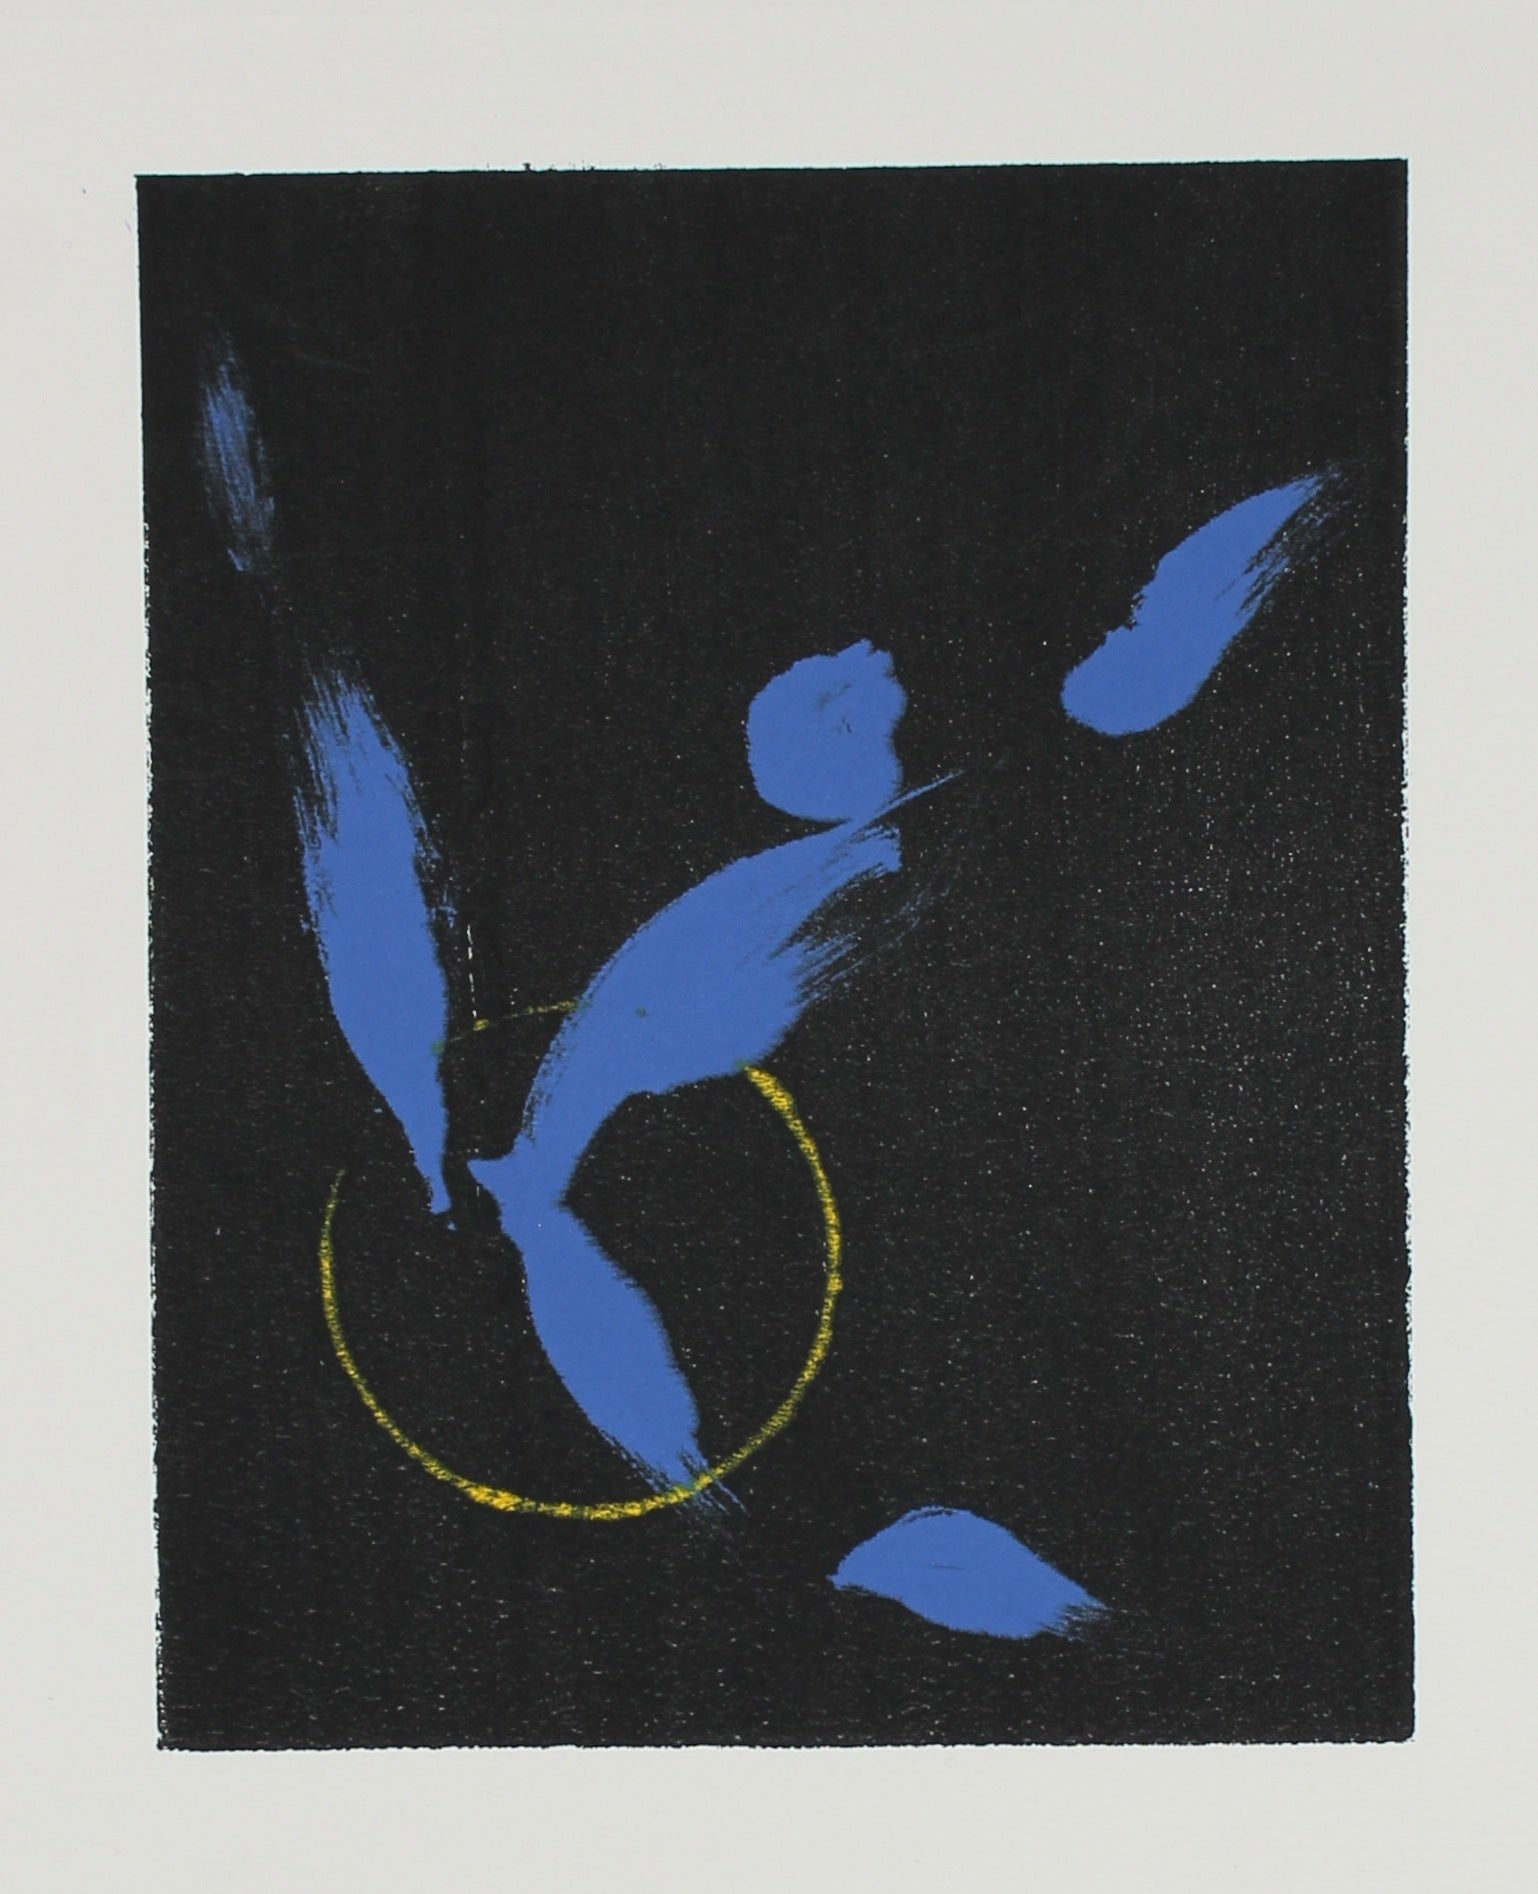 Abstract Print in Black Blue and Yellow<br>1990-2000s Monotype <br><br>#99633